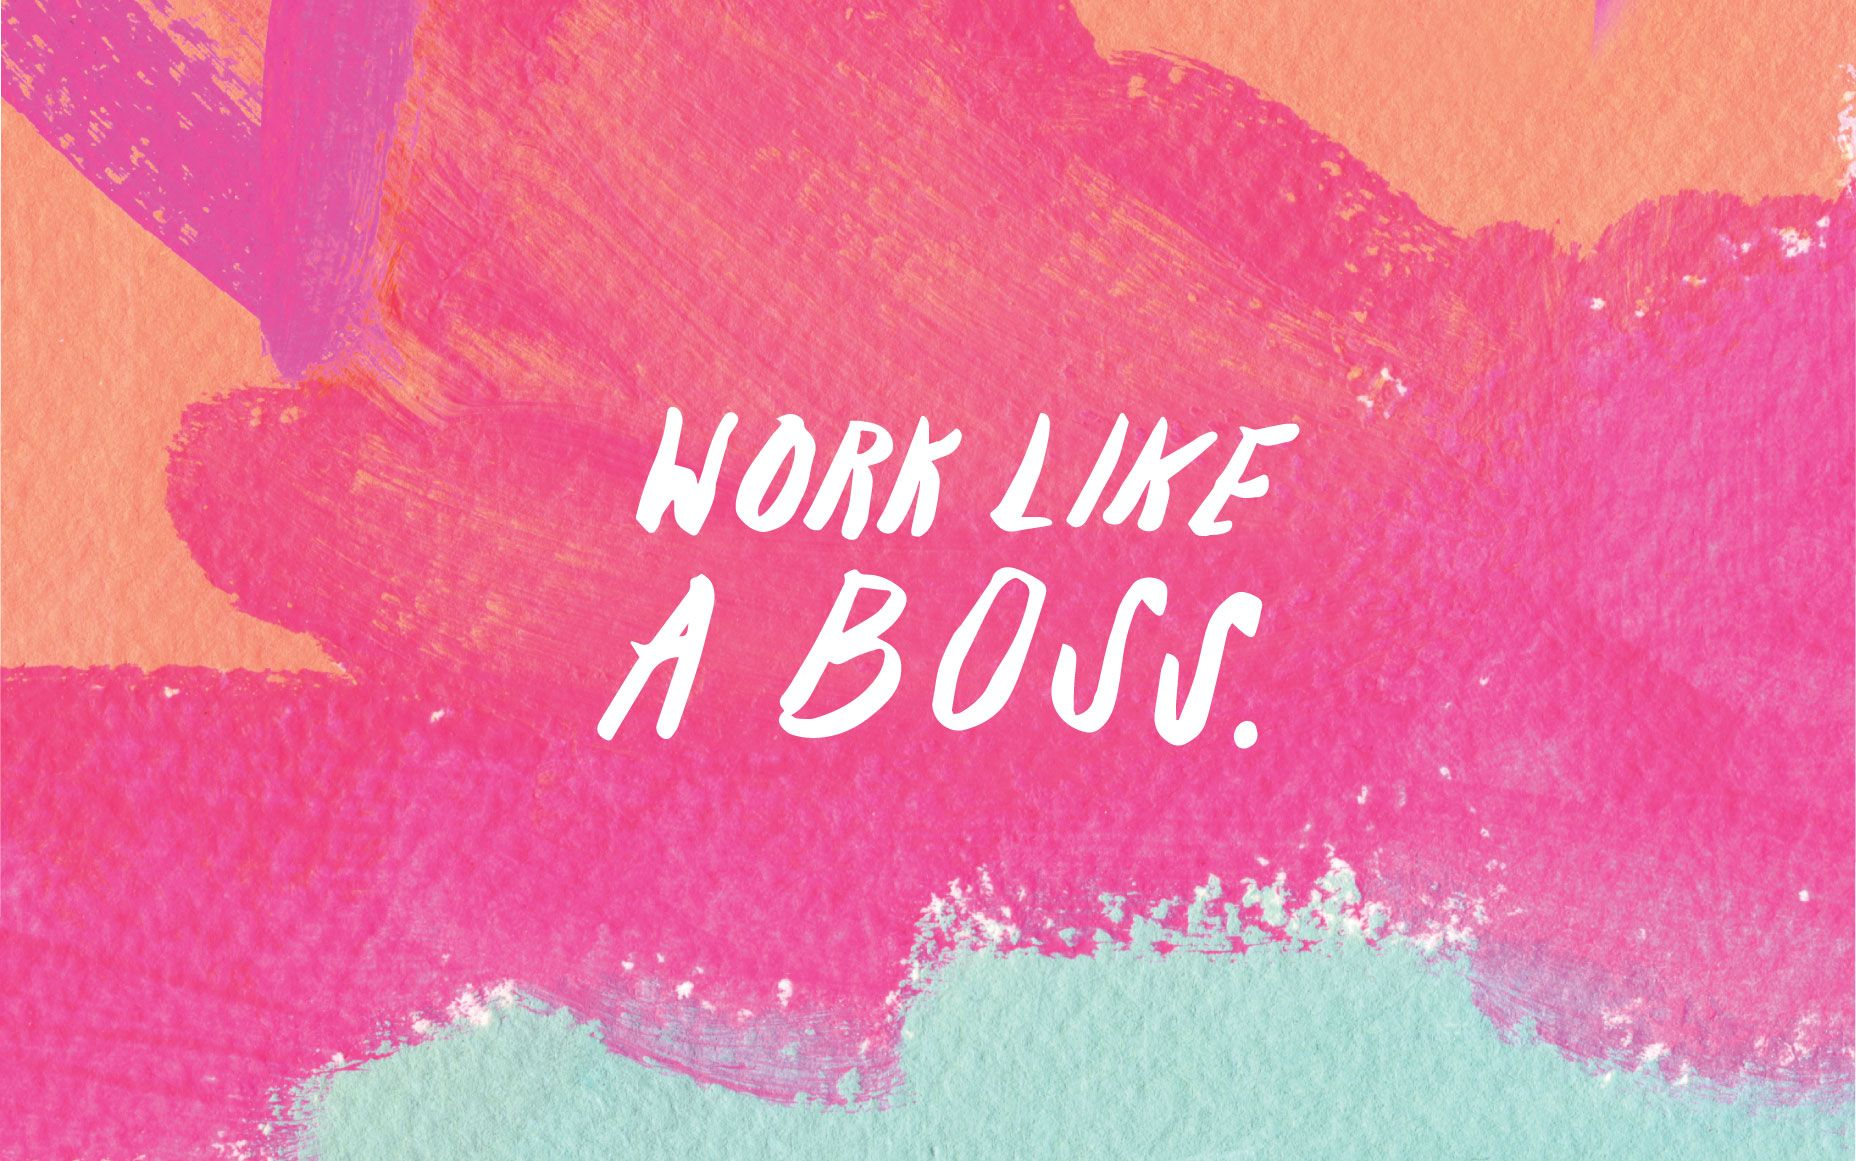 Girl Boss Quotes Wallpaper For Phone Pin By Marian Eamilao On Backgrounds In 2019 Imac